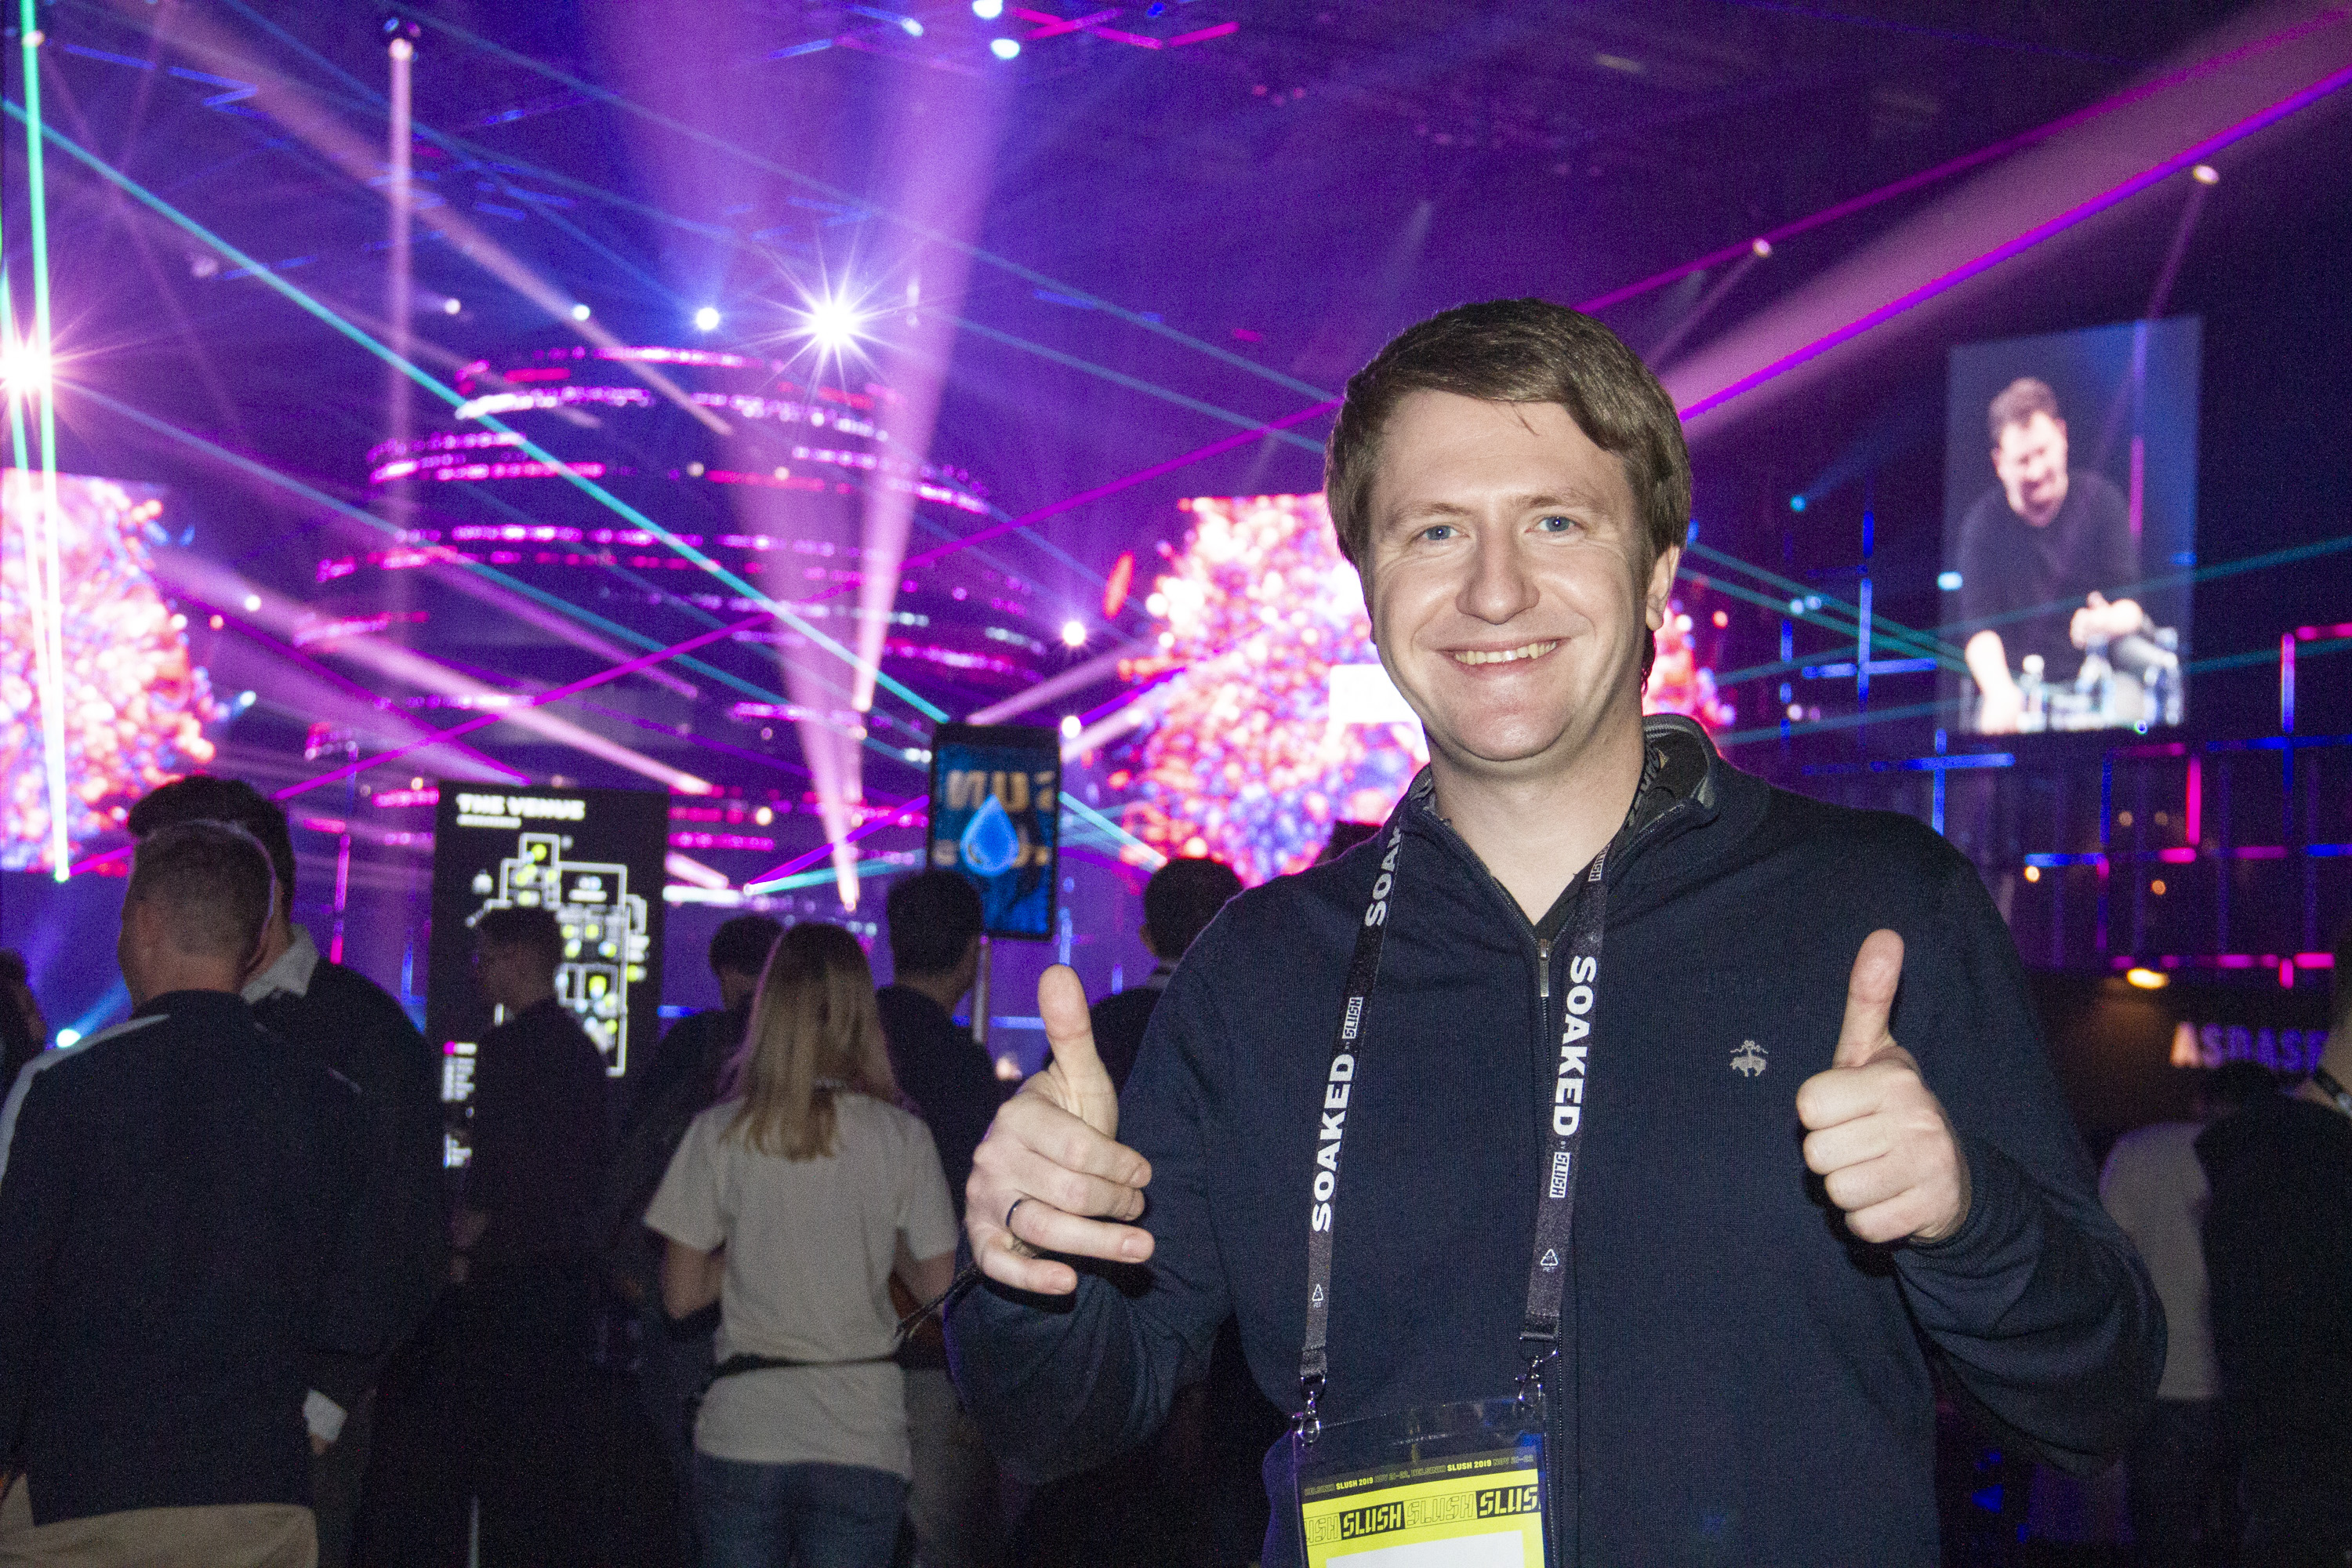 The winner of this year's GoTech Arena Finlanding competition, ProOnline, sees opening an office in Finland as a great opportunity for business growth.